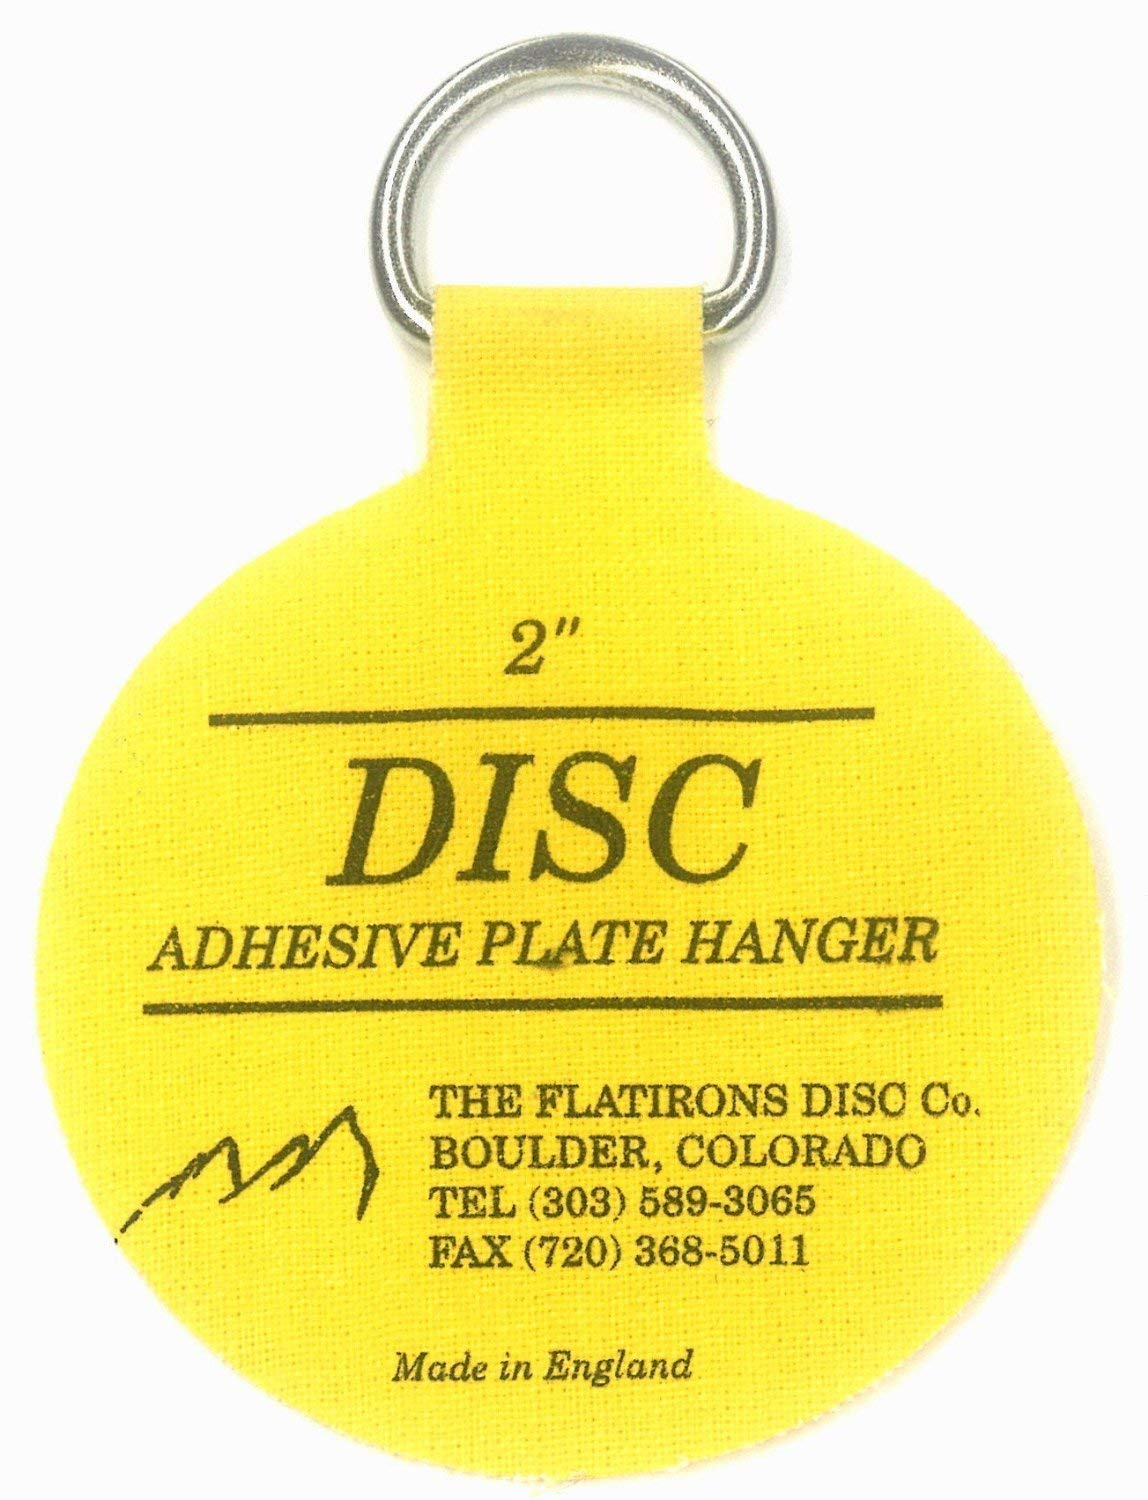 Flatirons Disc Adhesive Plate Hangers, 2 Inch, 4 Pack THE FLATIRON DISC Co.